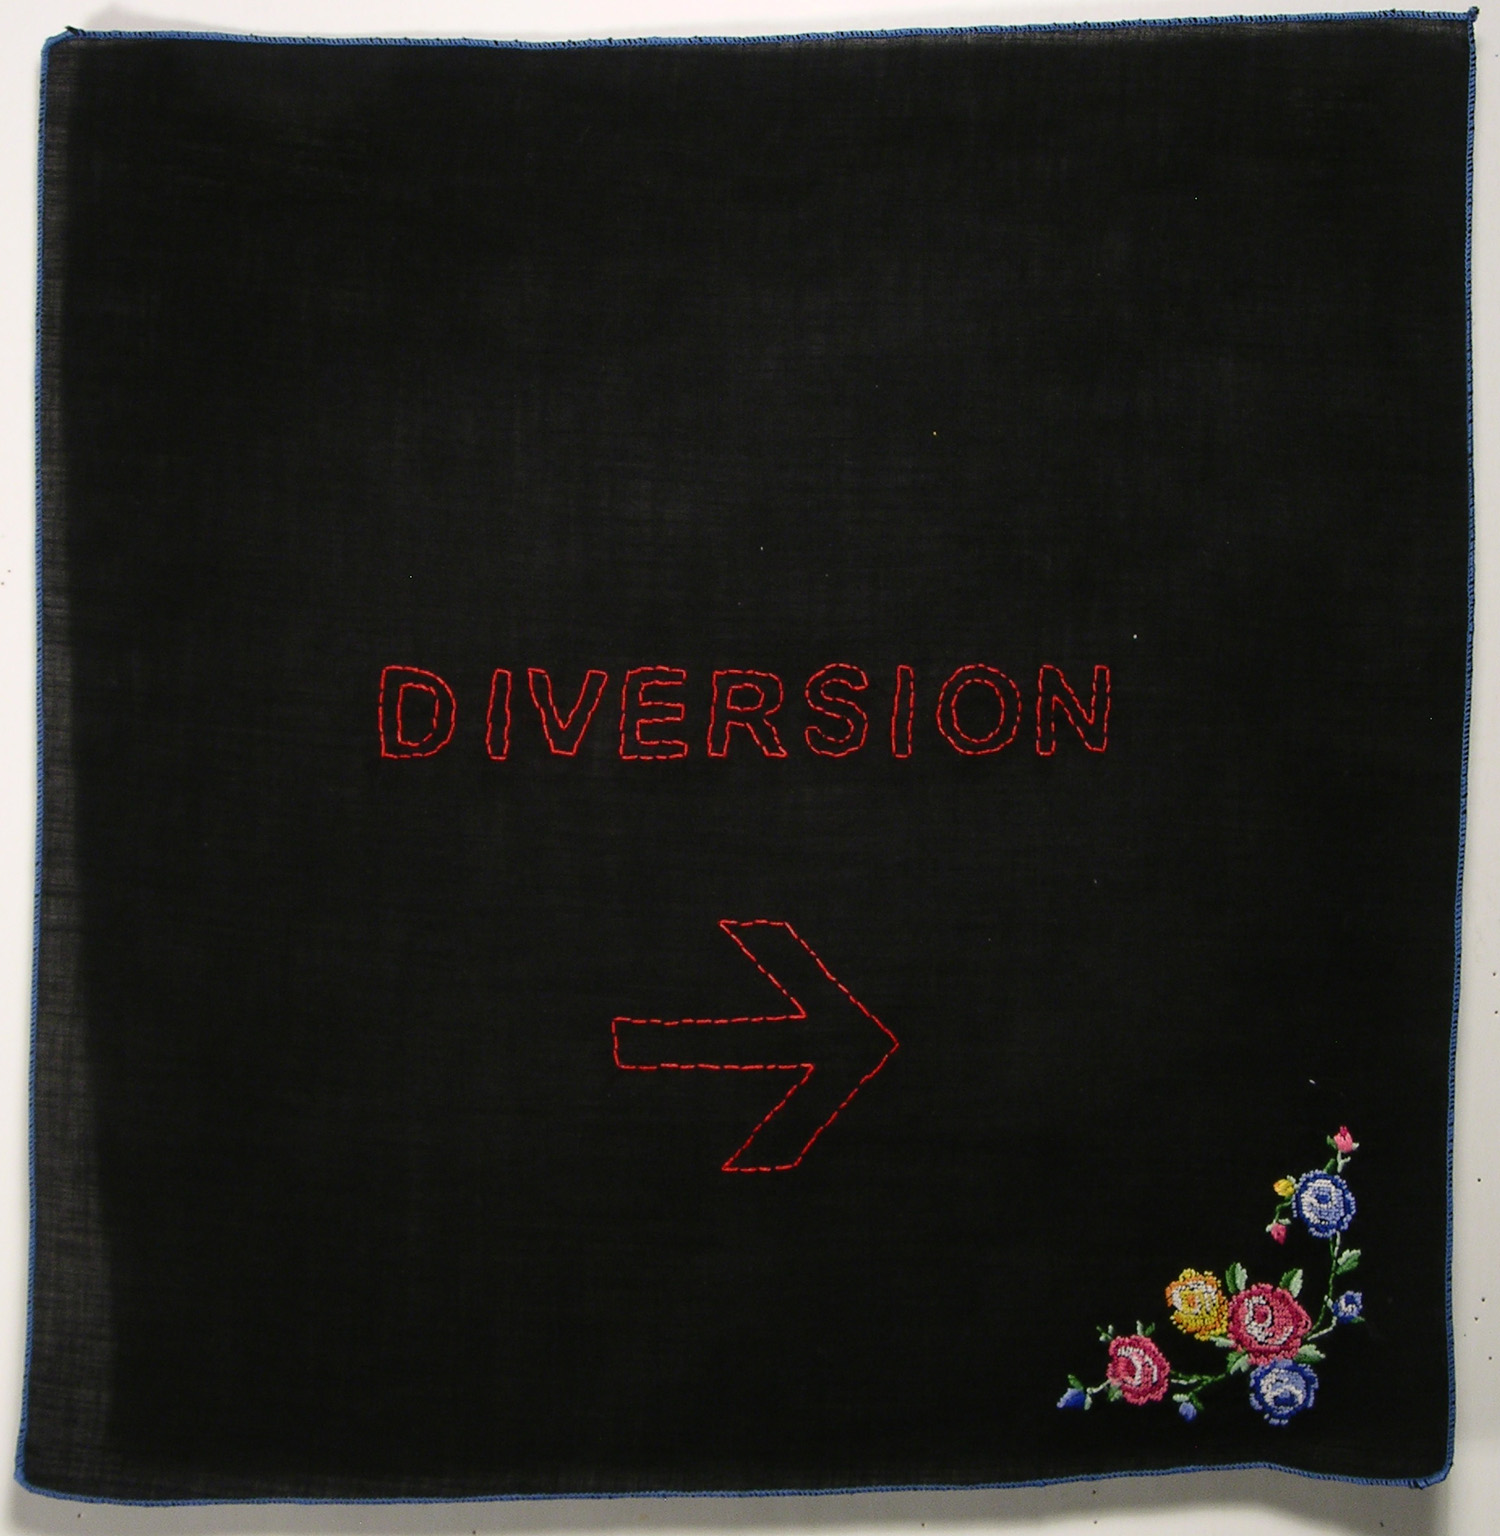 DIVERSION, 2007  First piece of hand stitching on a found handkerchief.